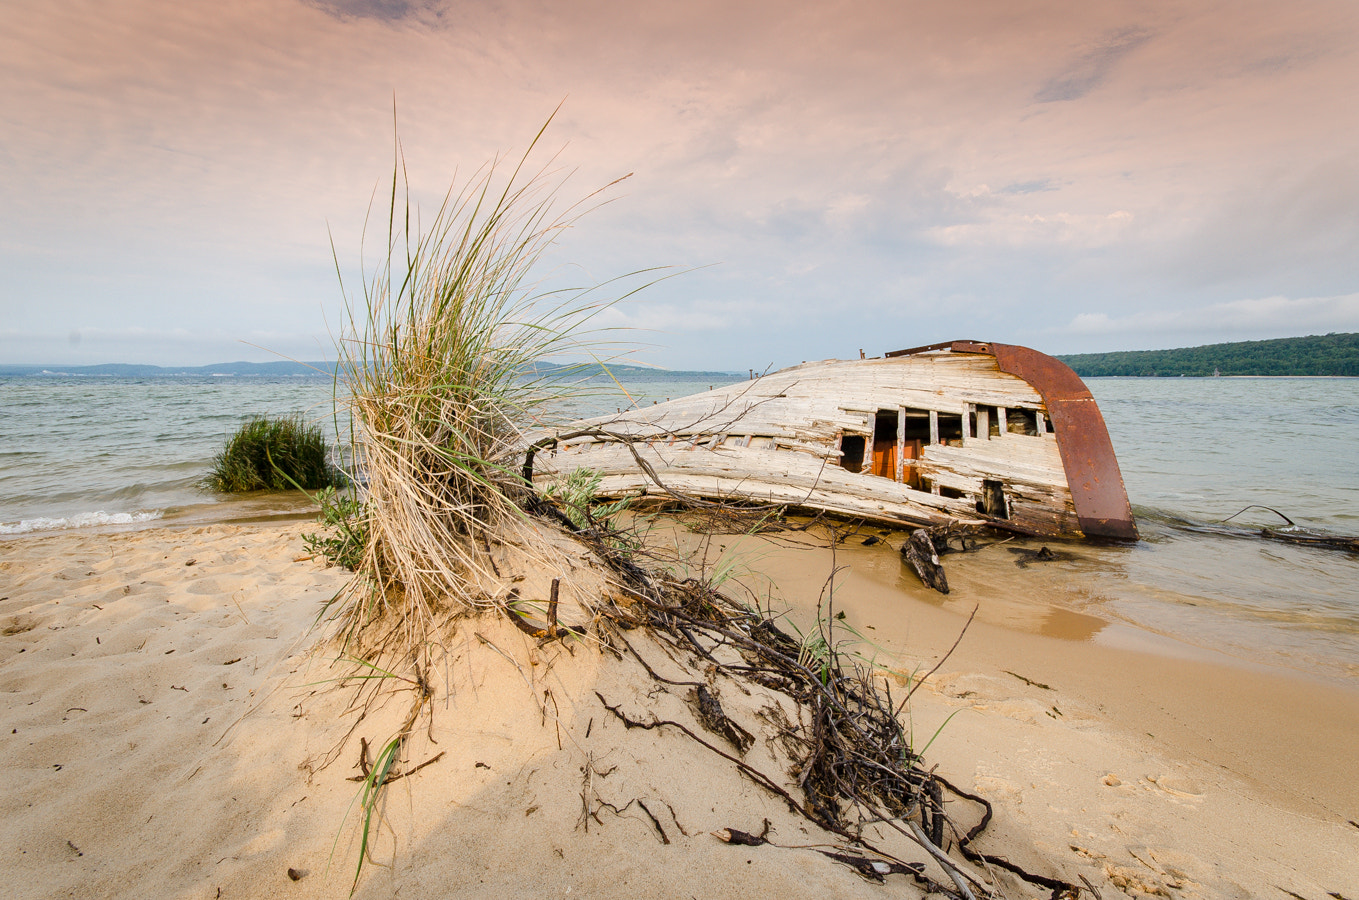 Photograph Beached 2 by Stevan Tontich on 500px